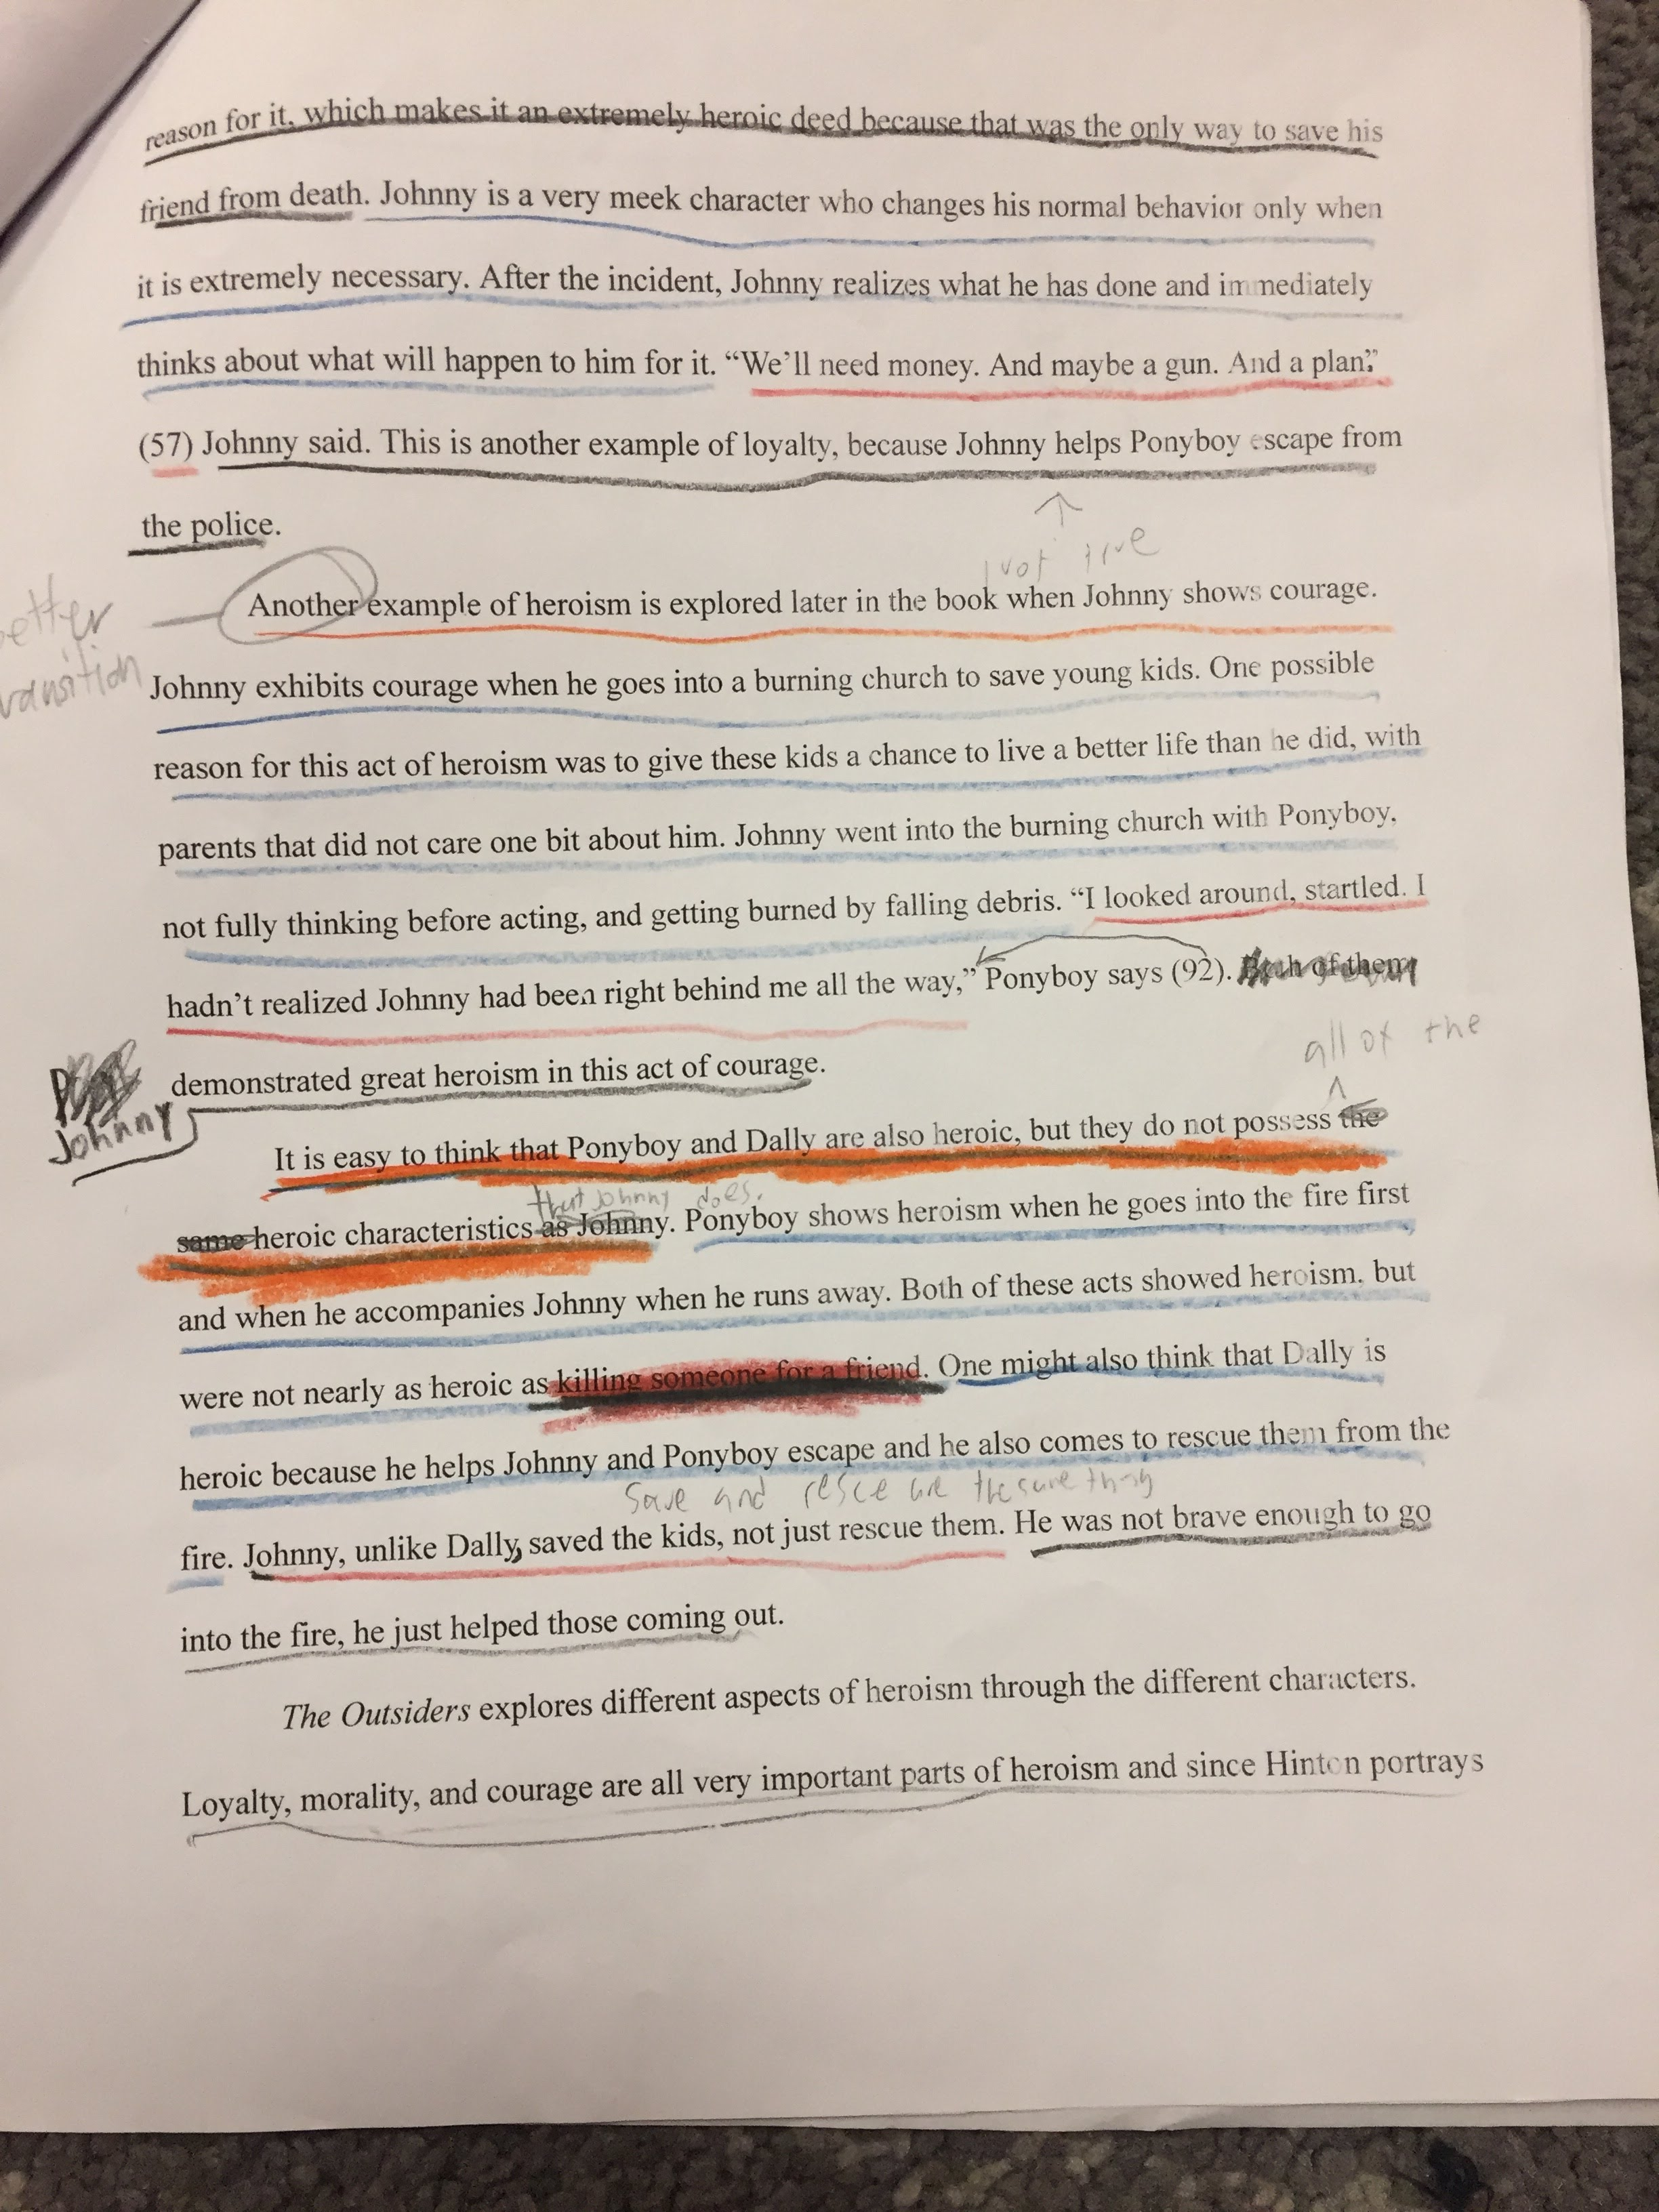 th grade english of their essays ensuring that each paragraph had a topic sentence introduction to evidence two pieces of evidence and sufficient analysis